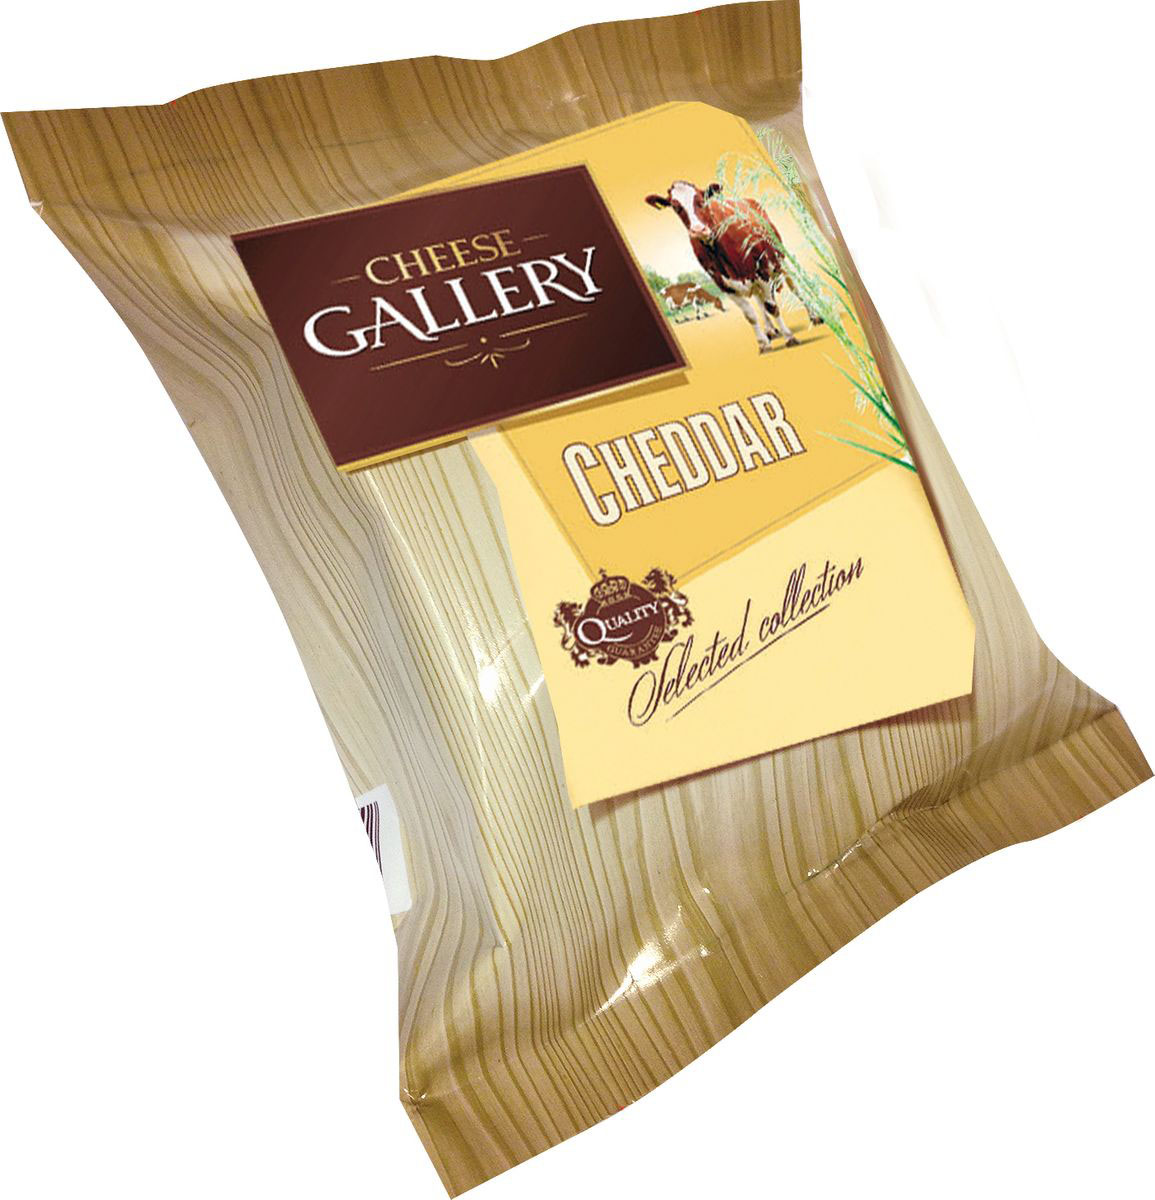 Cheese Gallery Сыр Чеддер, 50%, 250 г cheese gallery